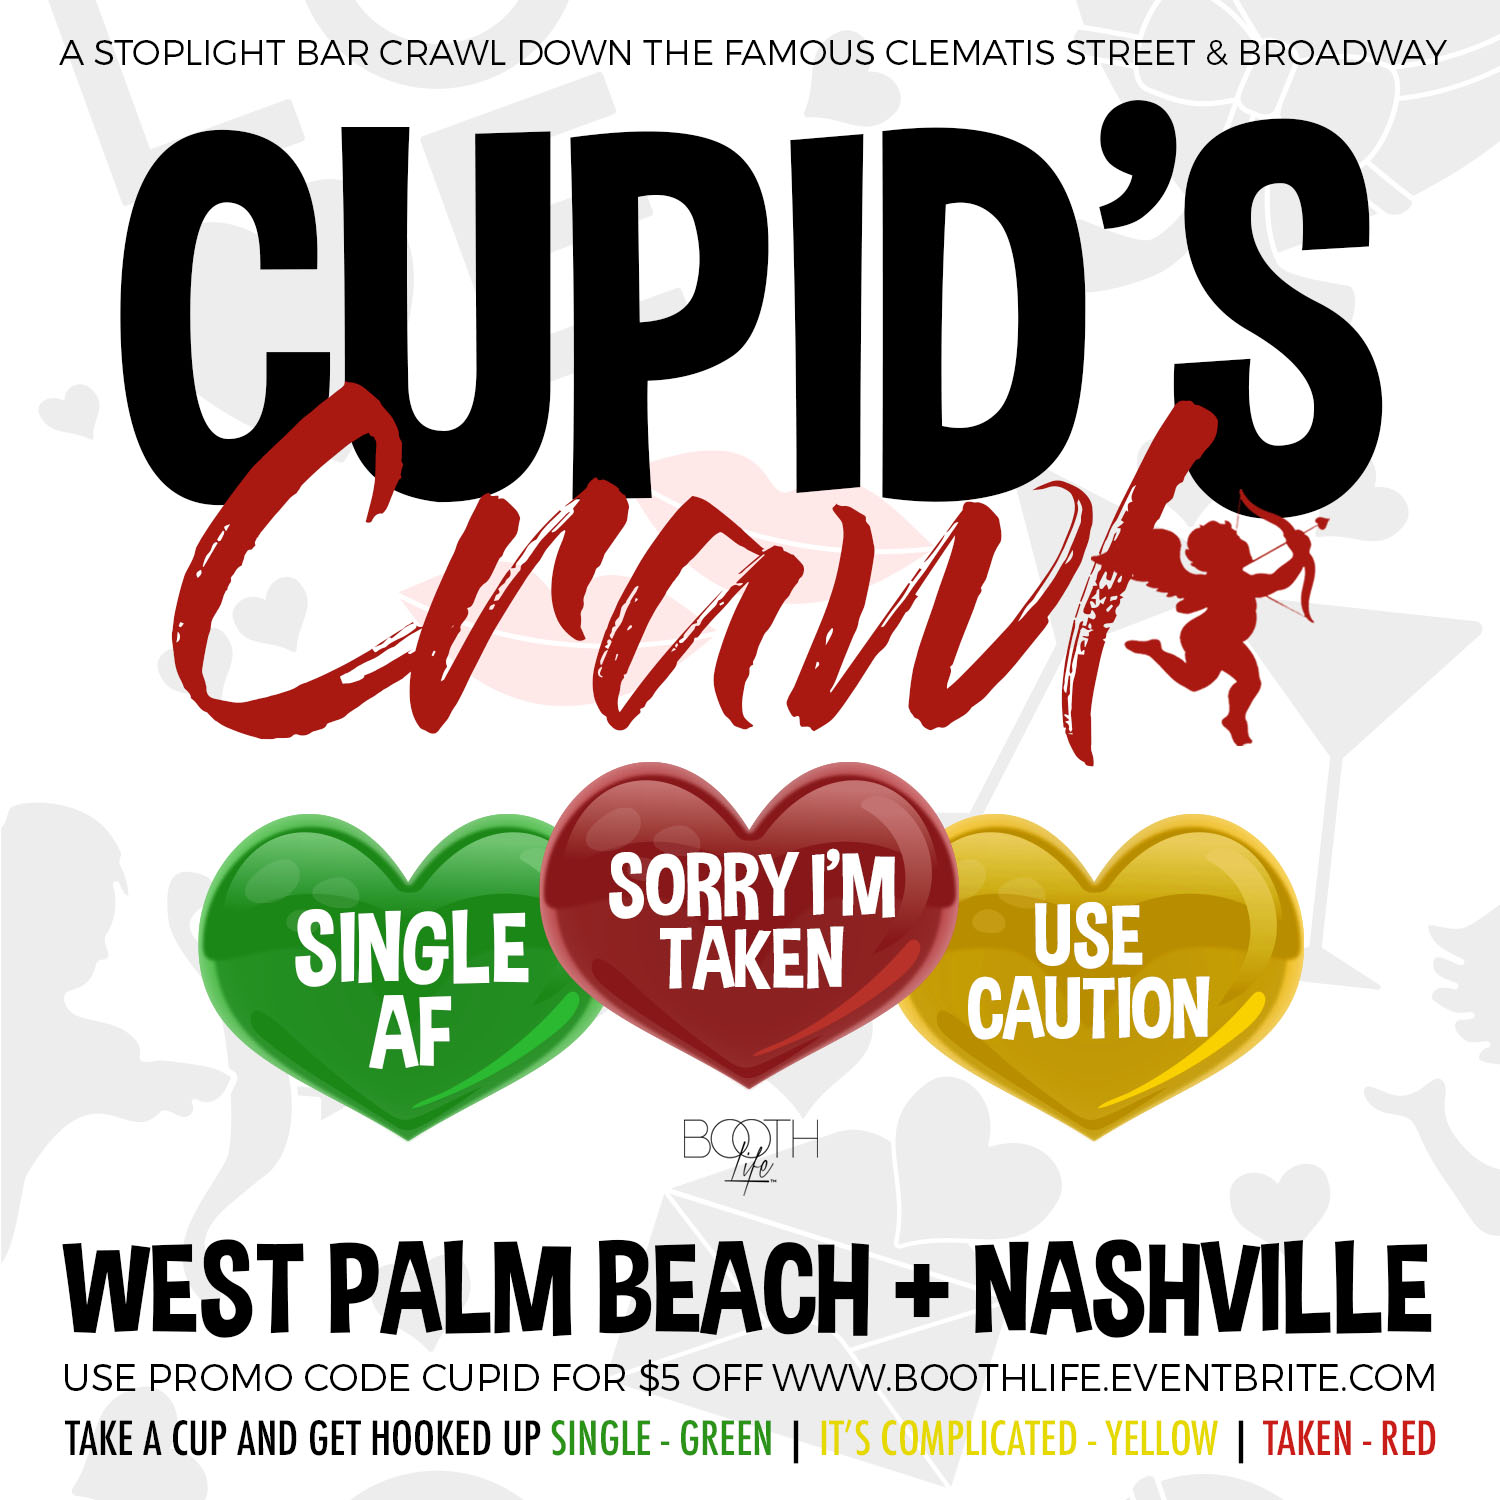 Nashville Bar Crawl West Palm Beach Bar Crawl